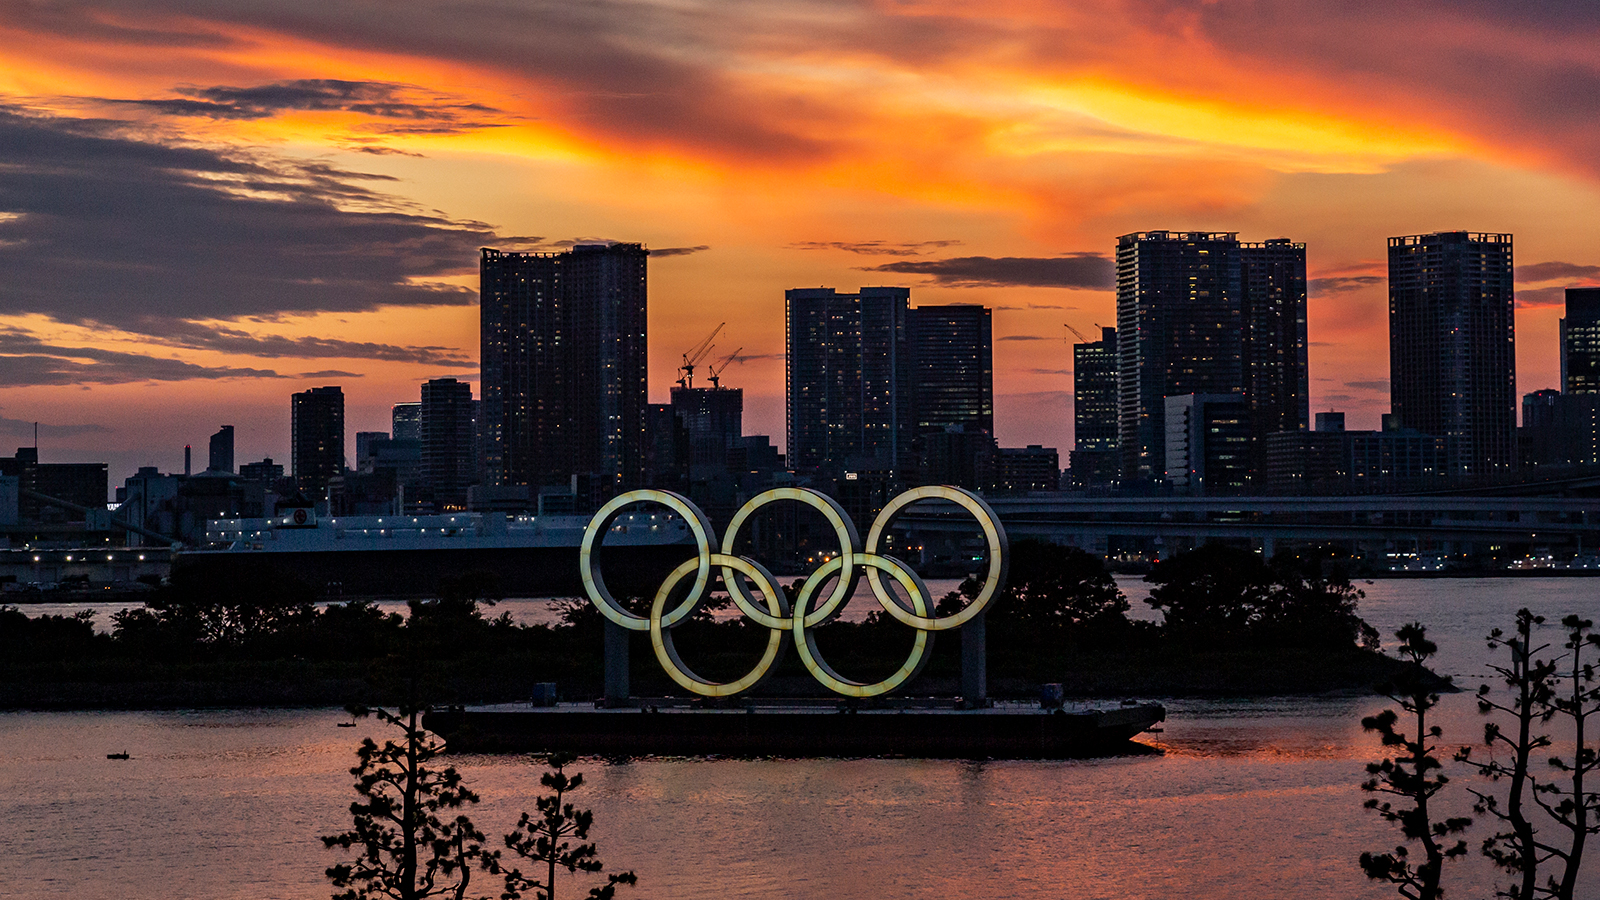 Olympic rings are seen at sunset on July 21, in Tokyo, Japan.